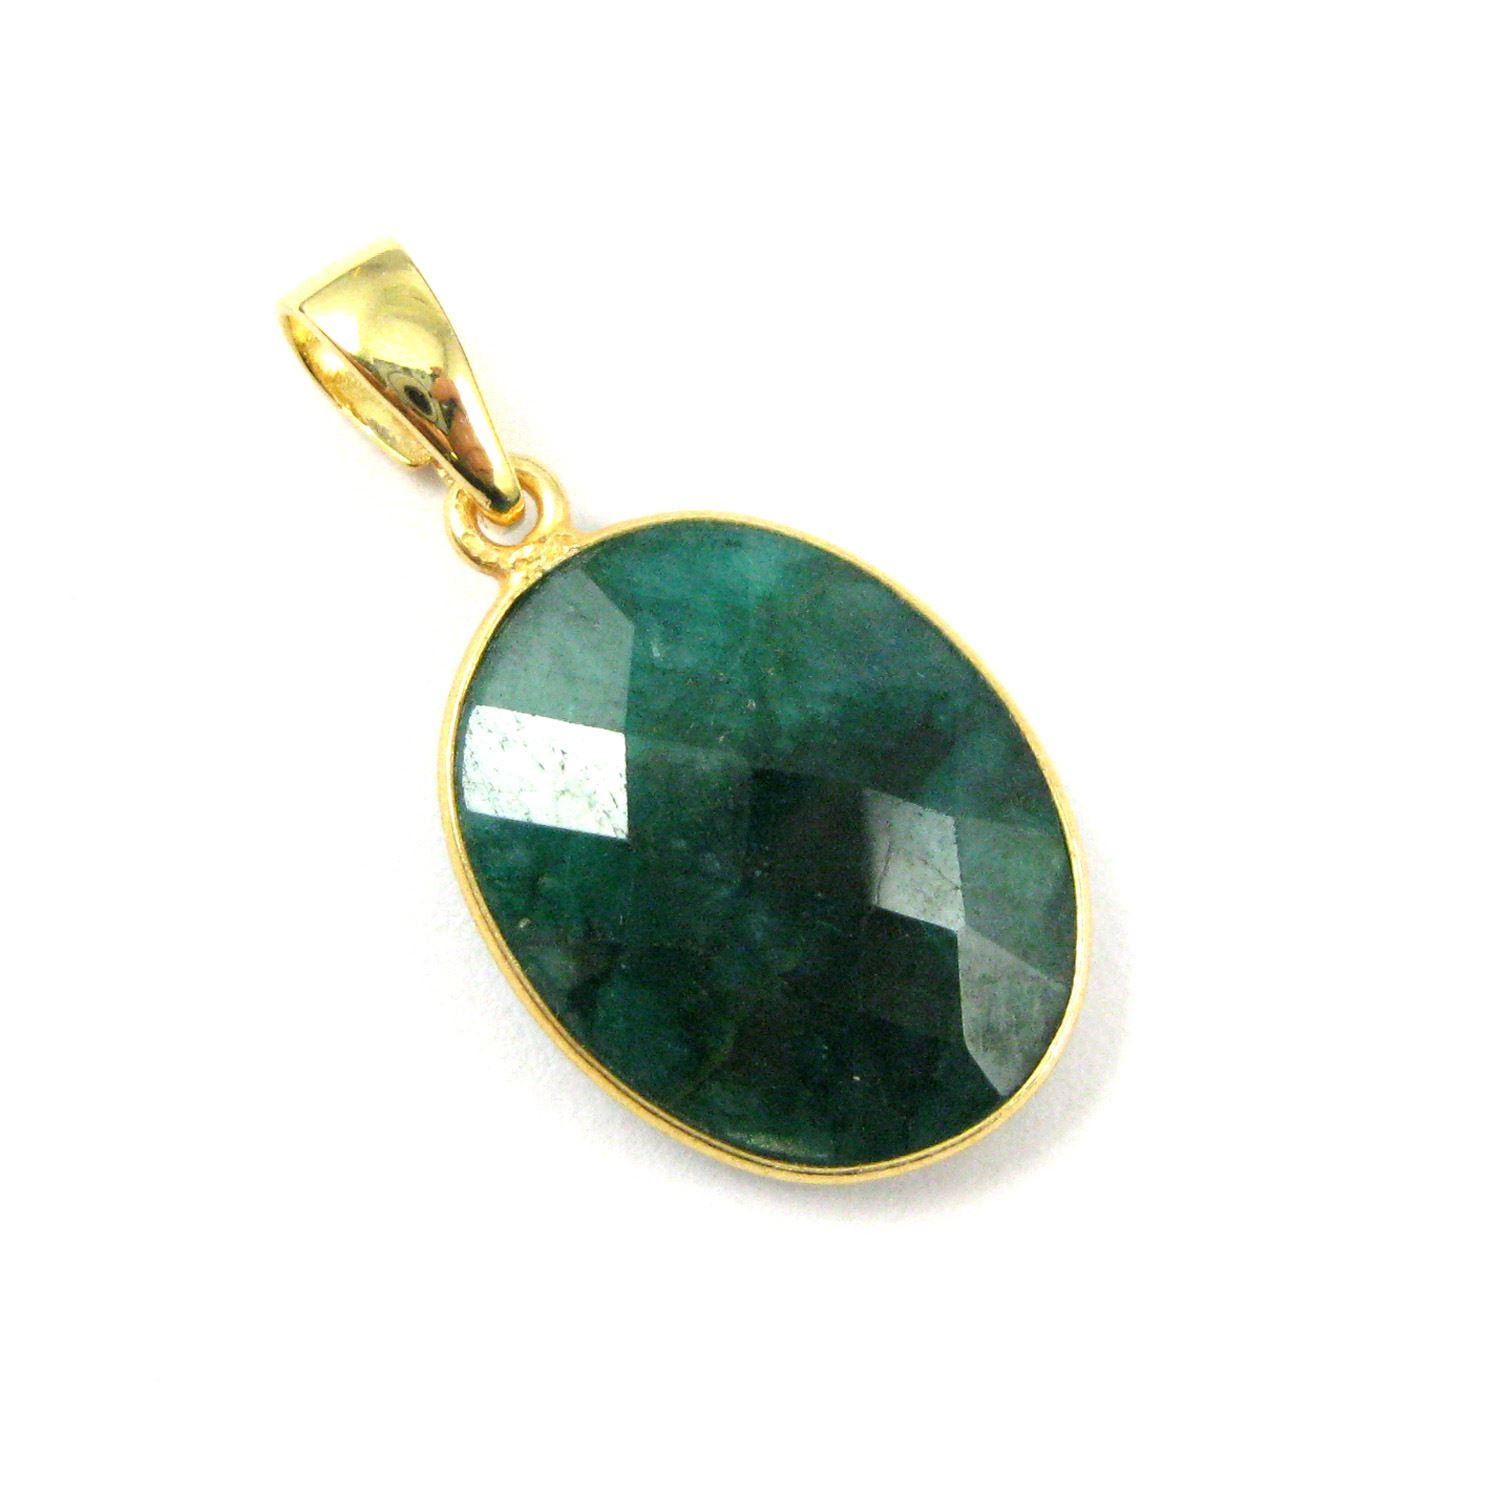 Bezel Gemstone Pendant with Bail - Gold plated Sterling Silver Oval Gem Pendant - Ready for Necklace - 28mm - Emerald Dyed